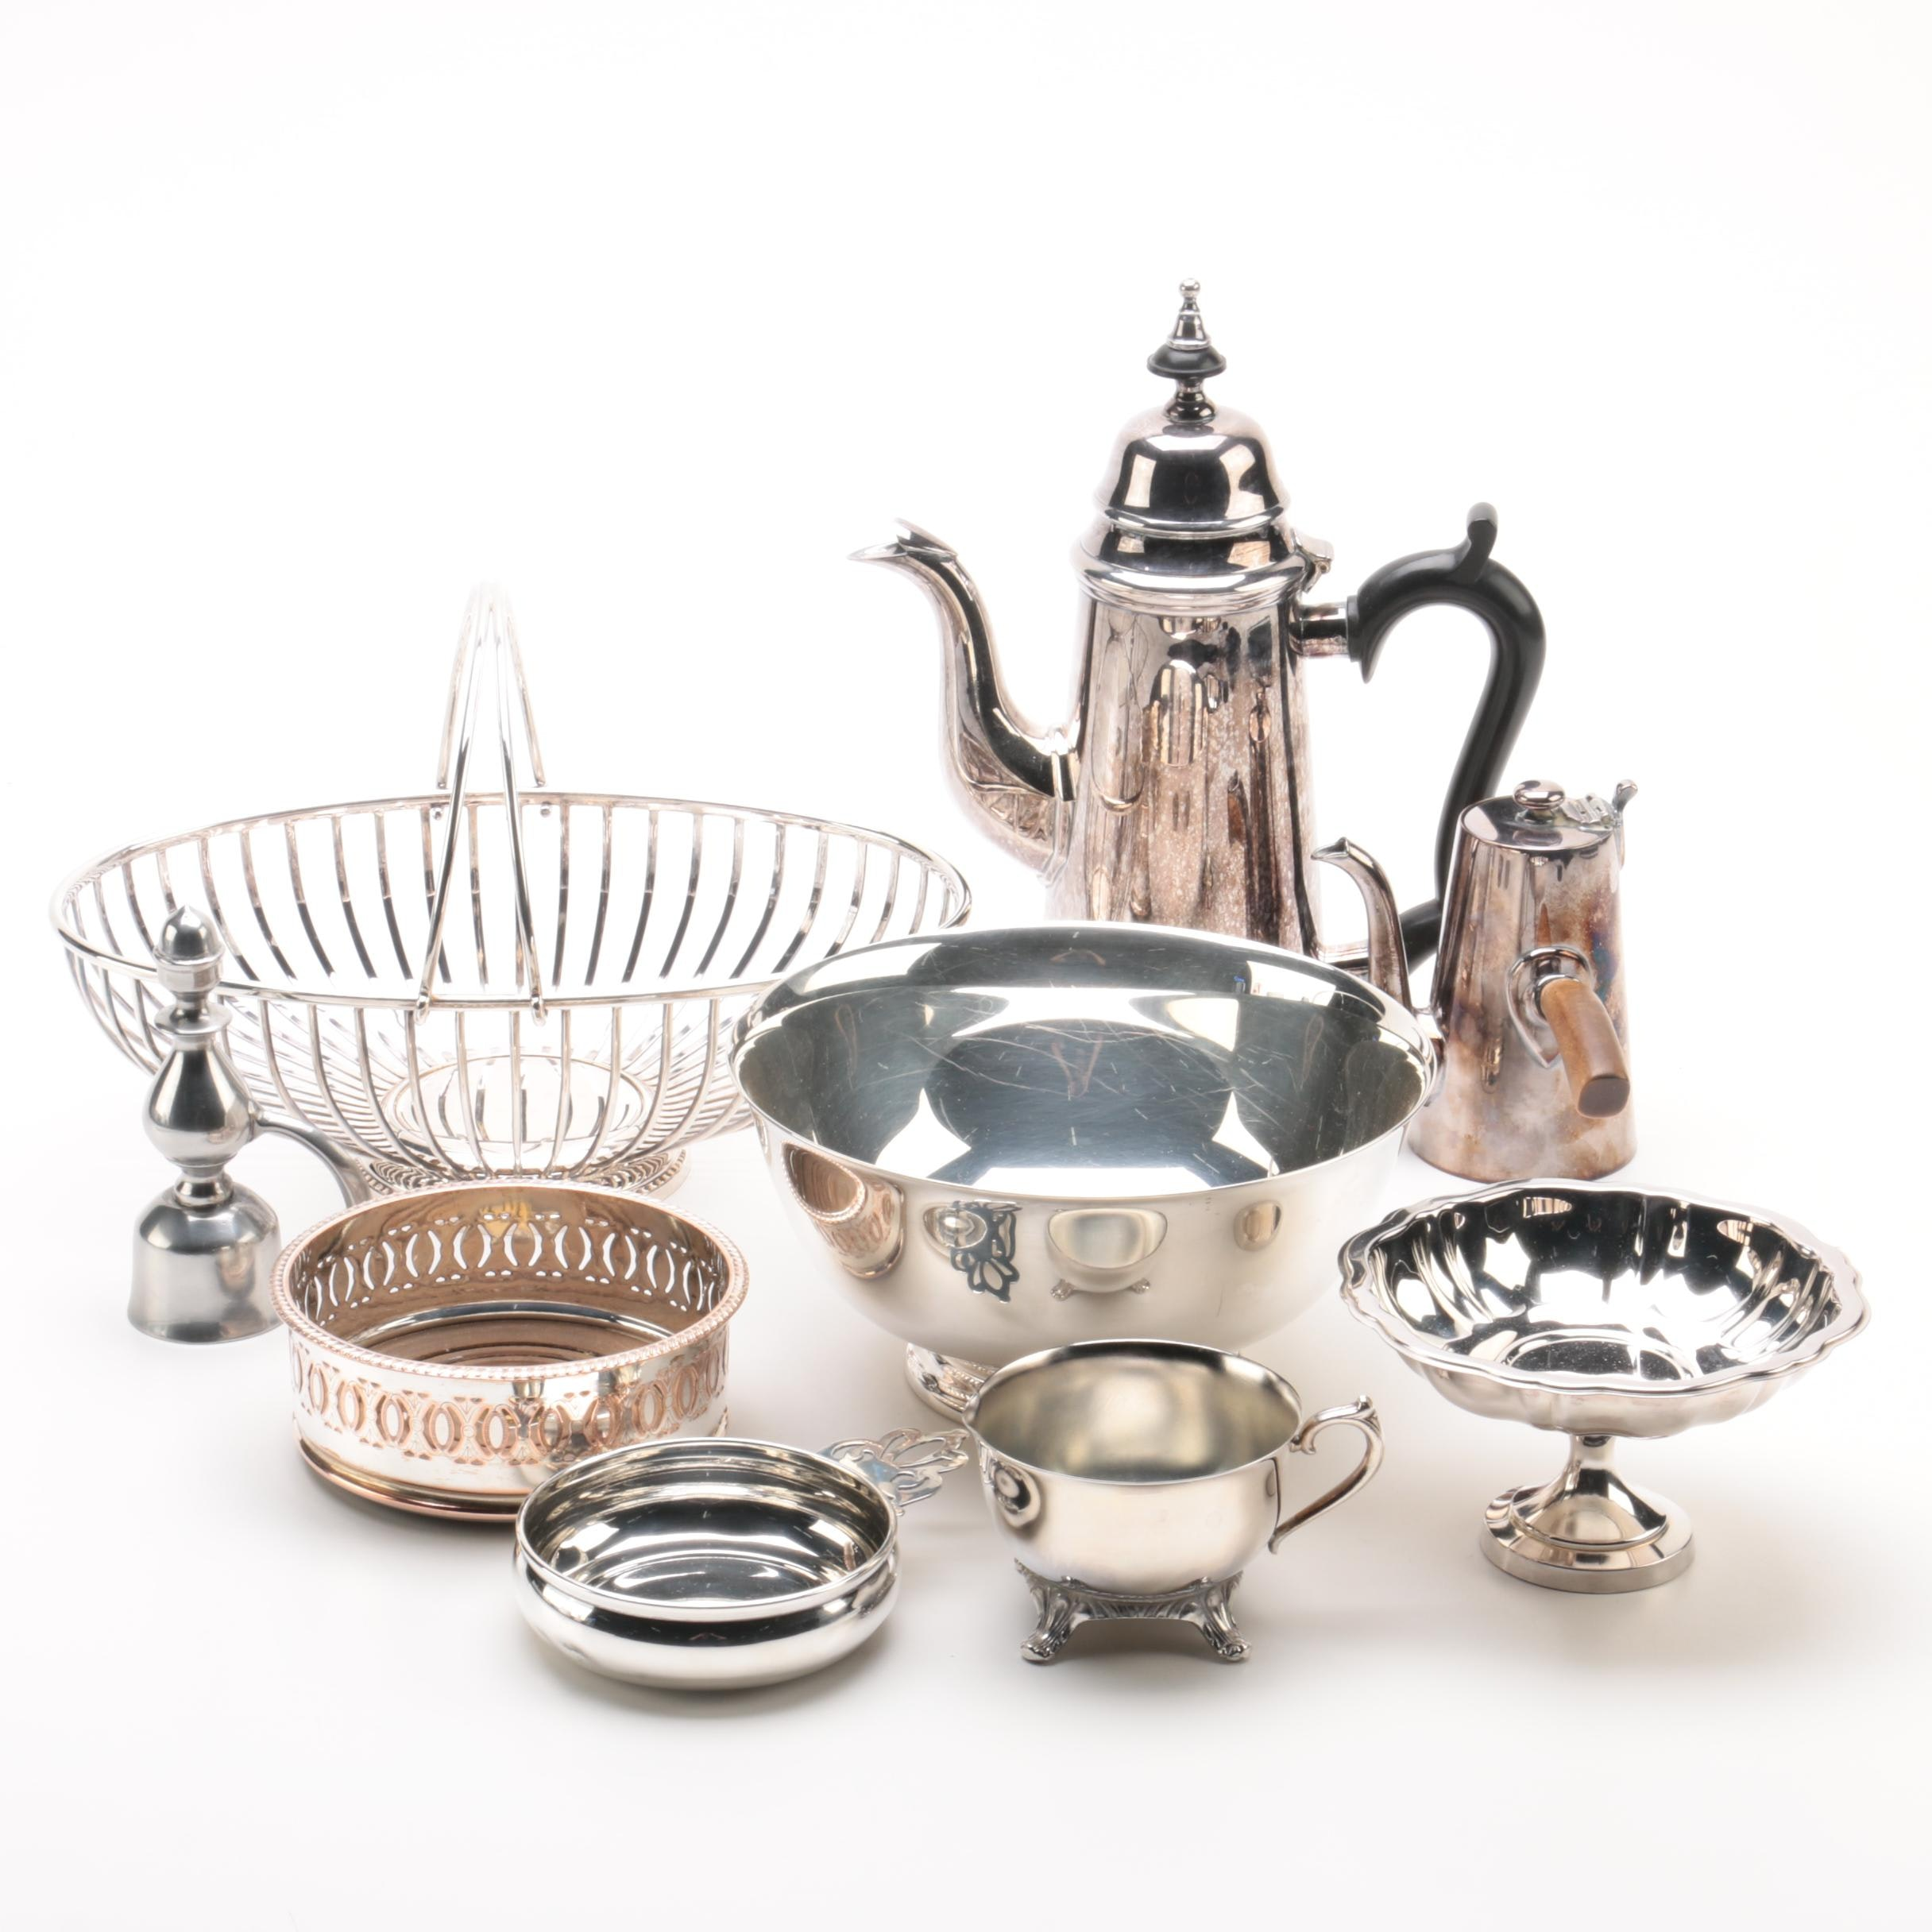 Silver Plate Serveware Featuring Oneida, Reed & Barton, and Lunt